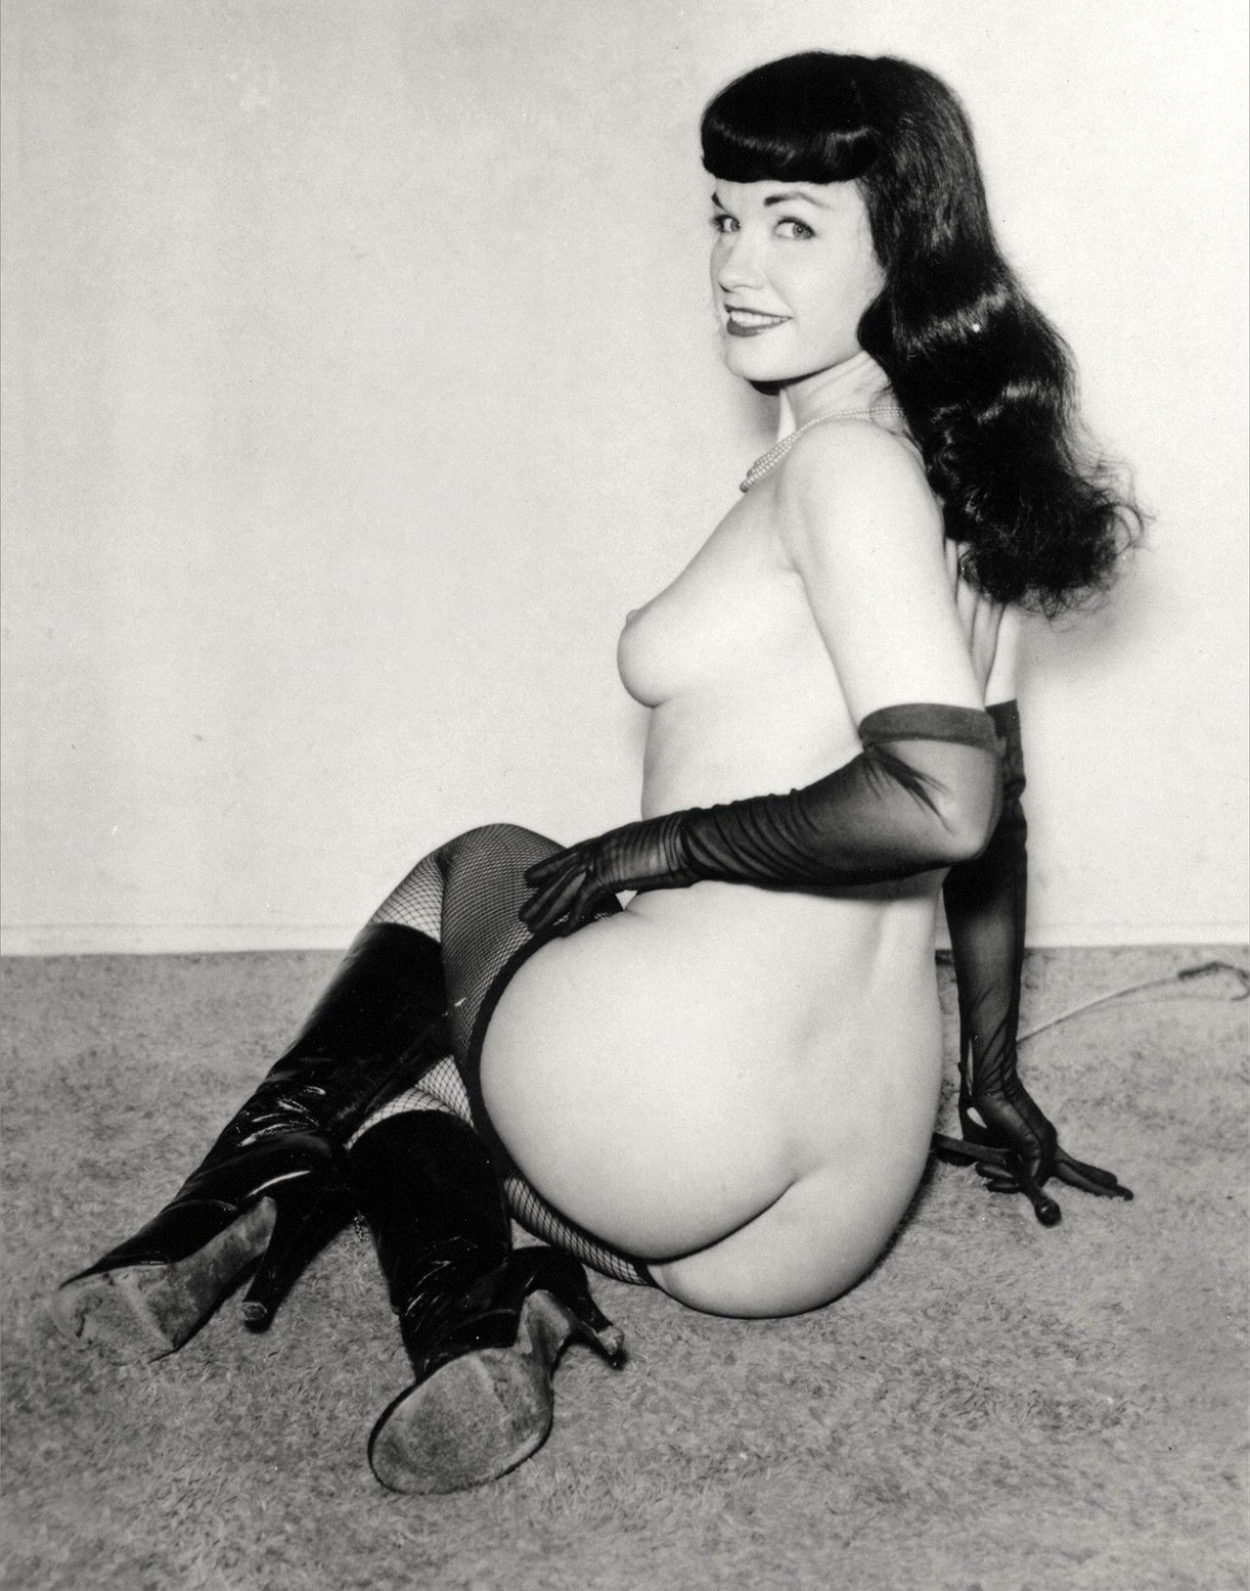 Vintage photo of Bettie Page